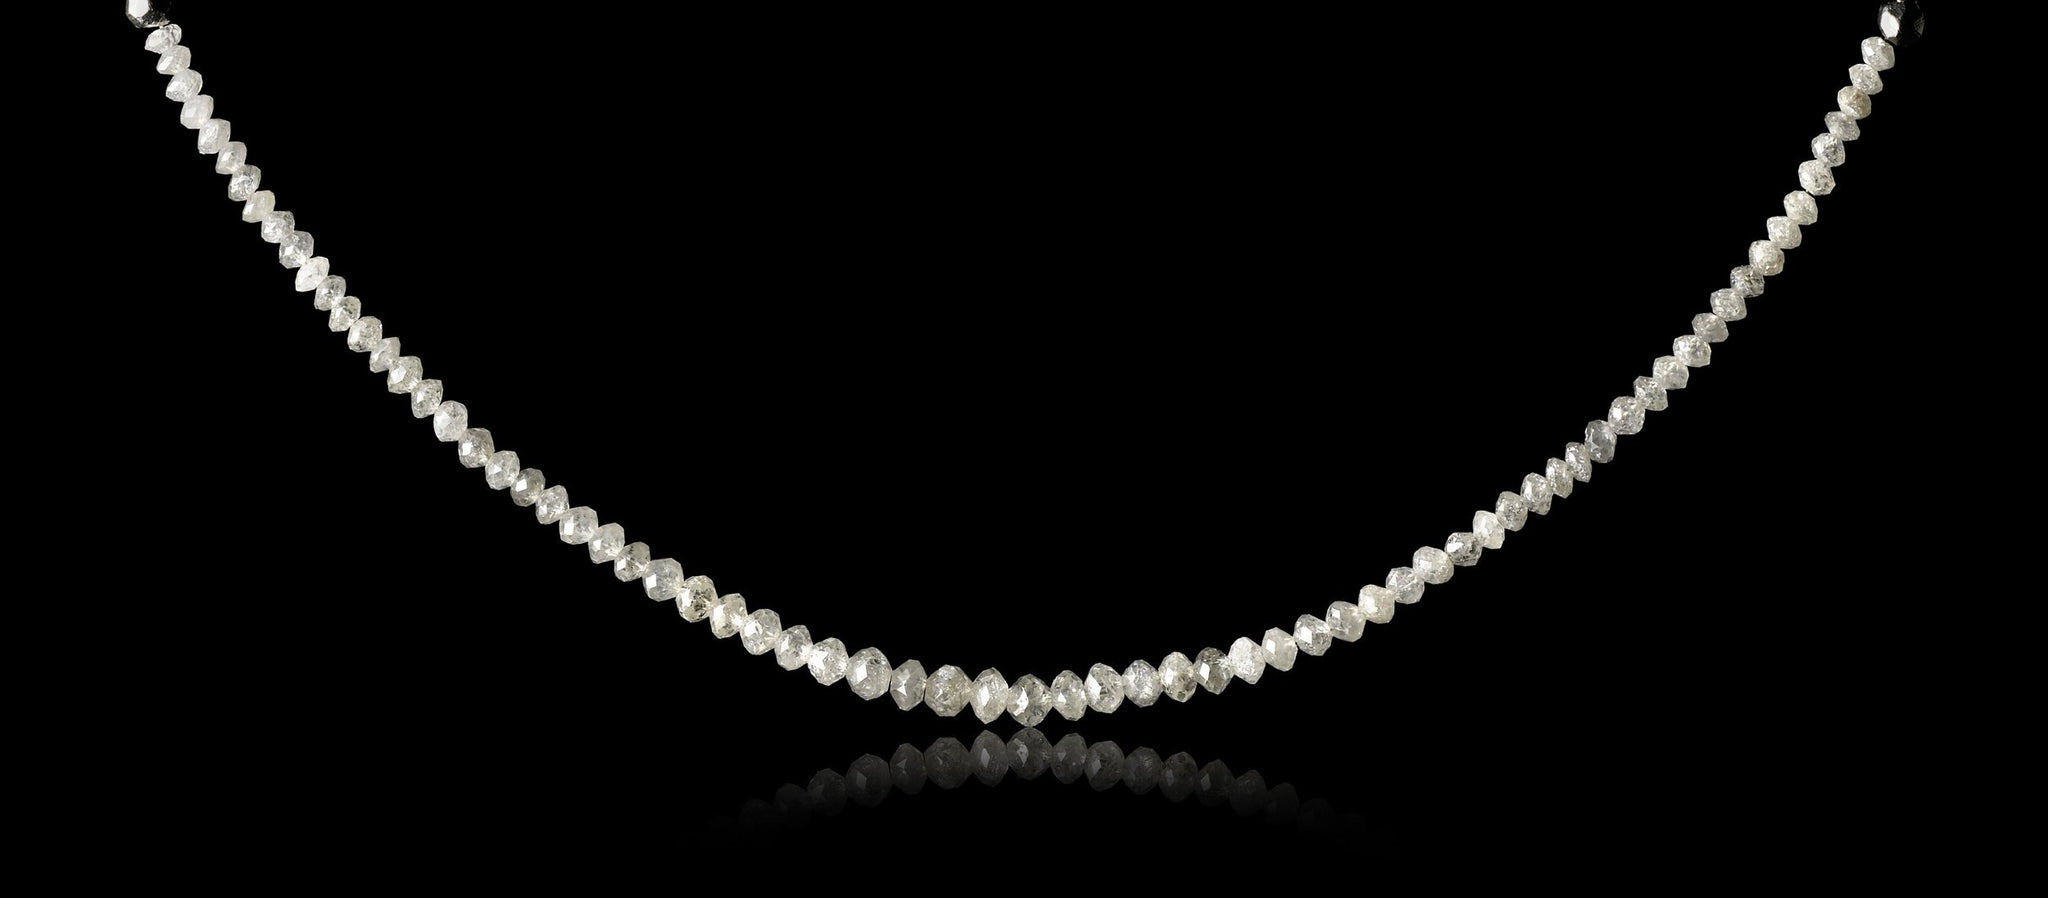 <strong>18.25 ct.</strong> Hvide Facetterede Diamanter i Håndlavet Collier